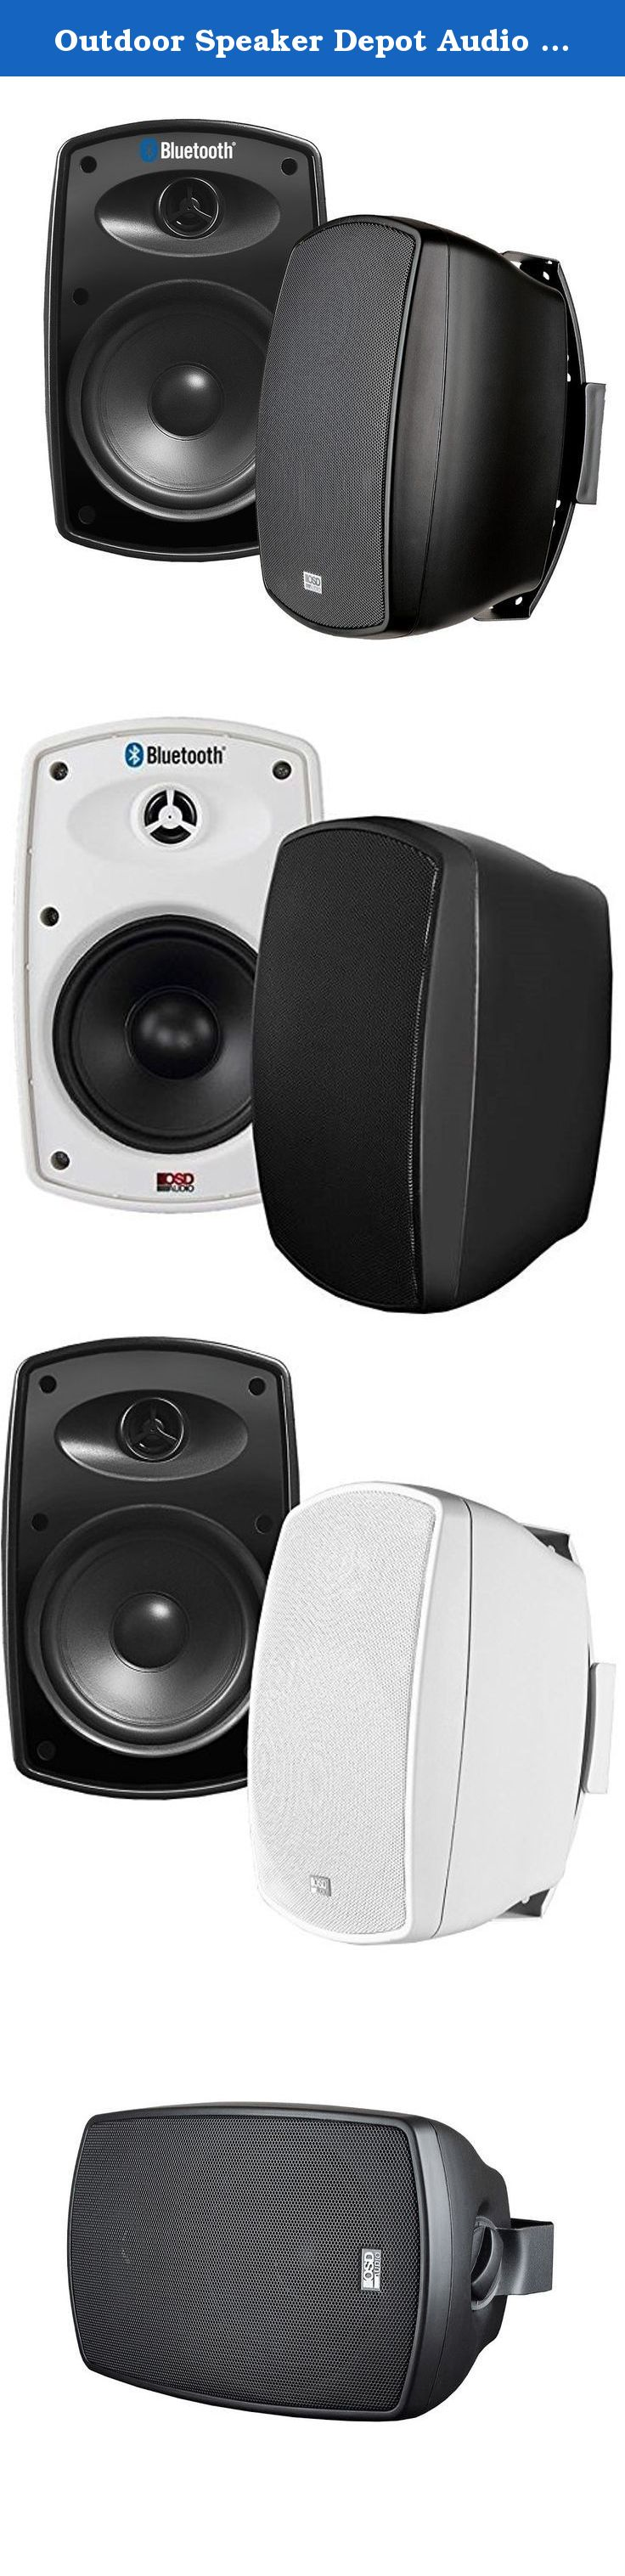 "Outdoor Speaker Depot Audio BTP650 6 5"" 2 Way Indoor Outdoor"